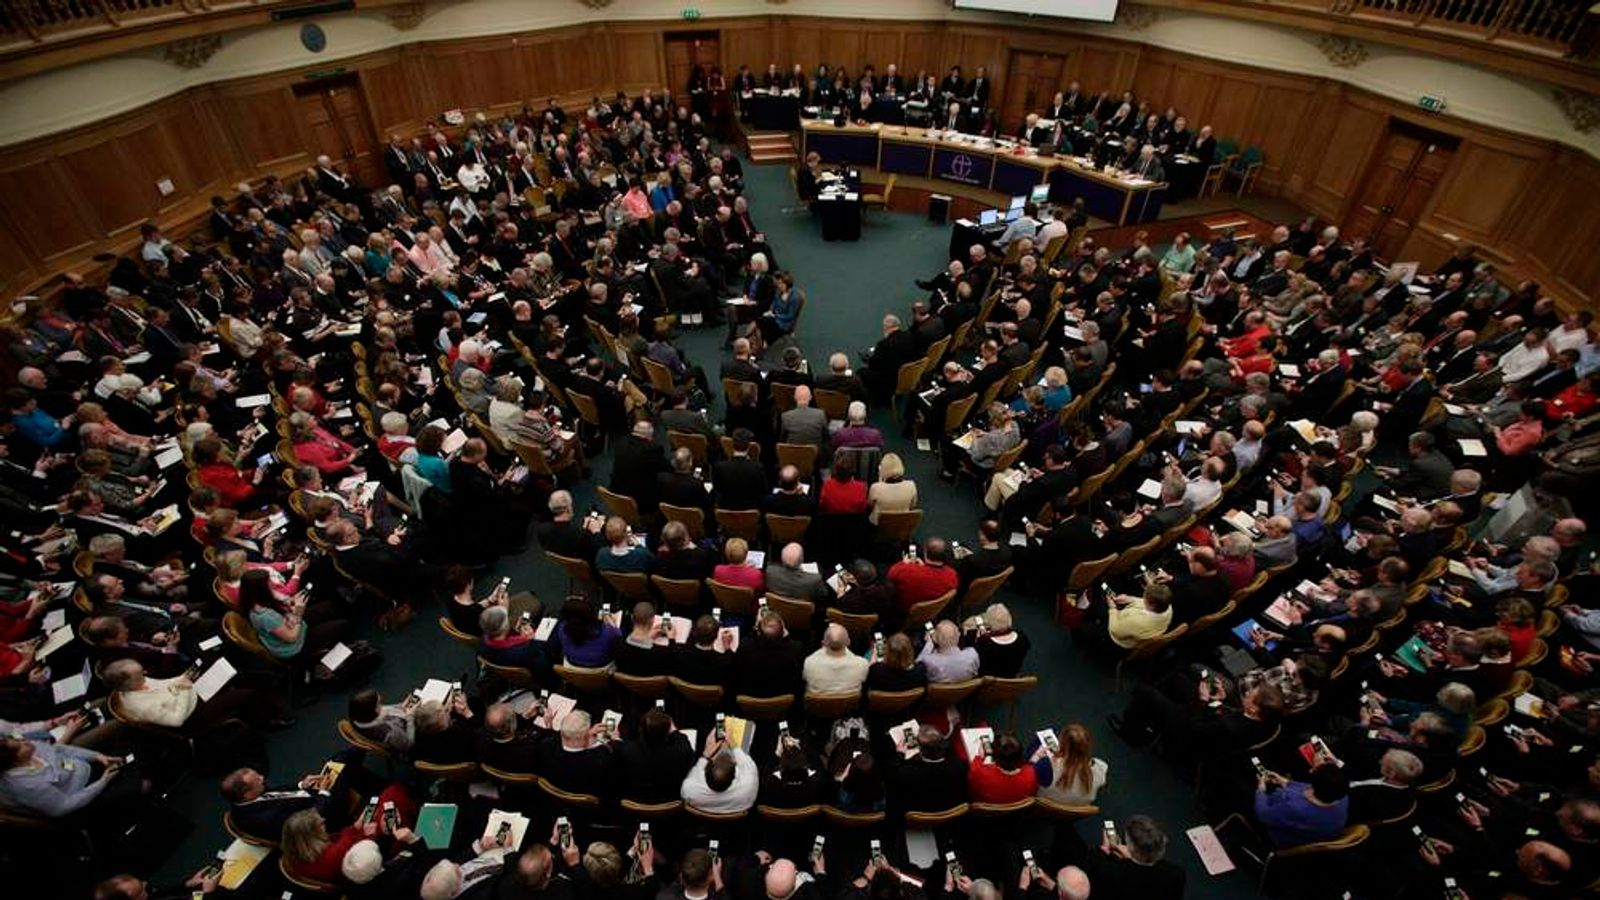 General view of a meeting of the General Synod of the Church of England